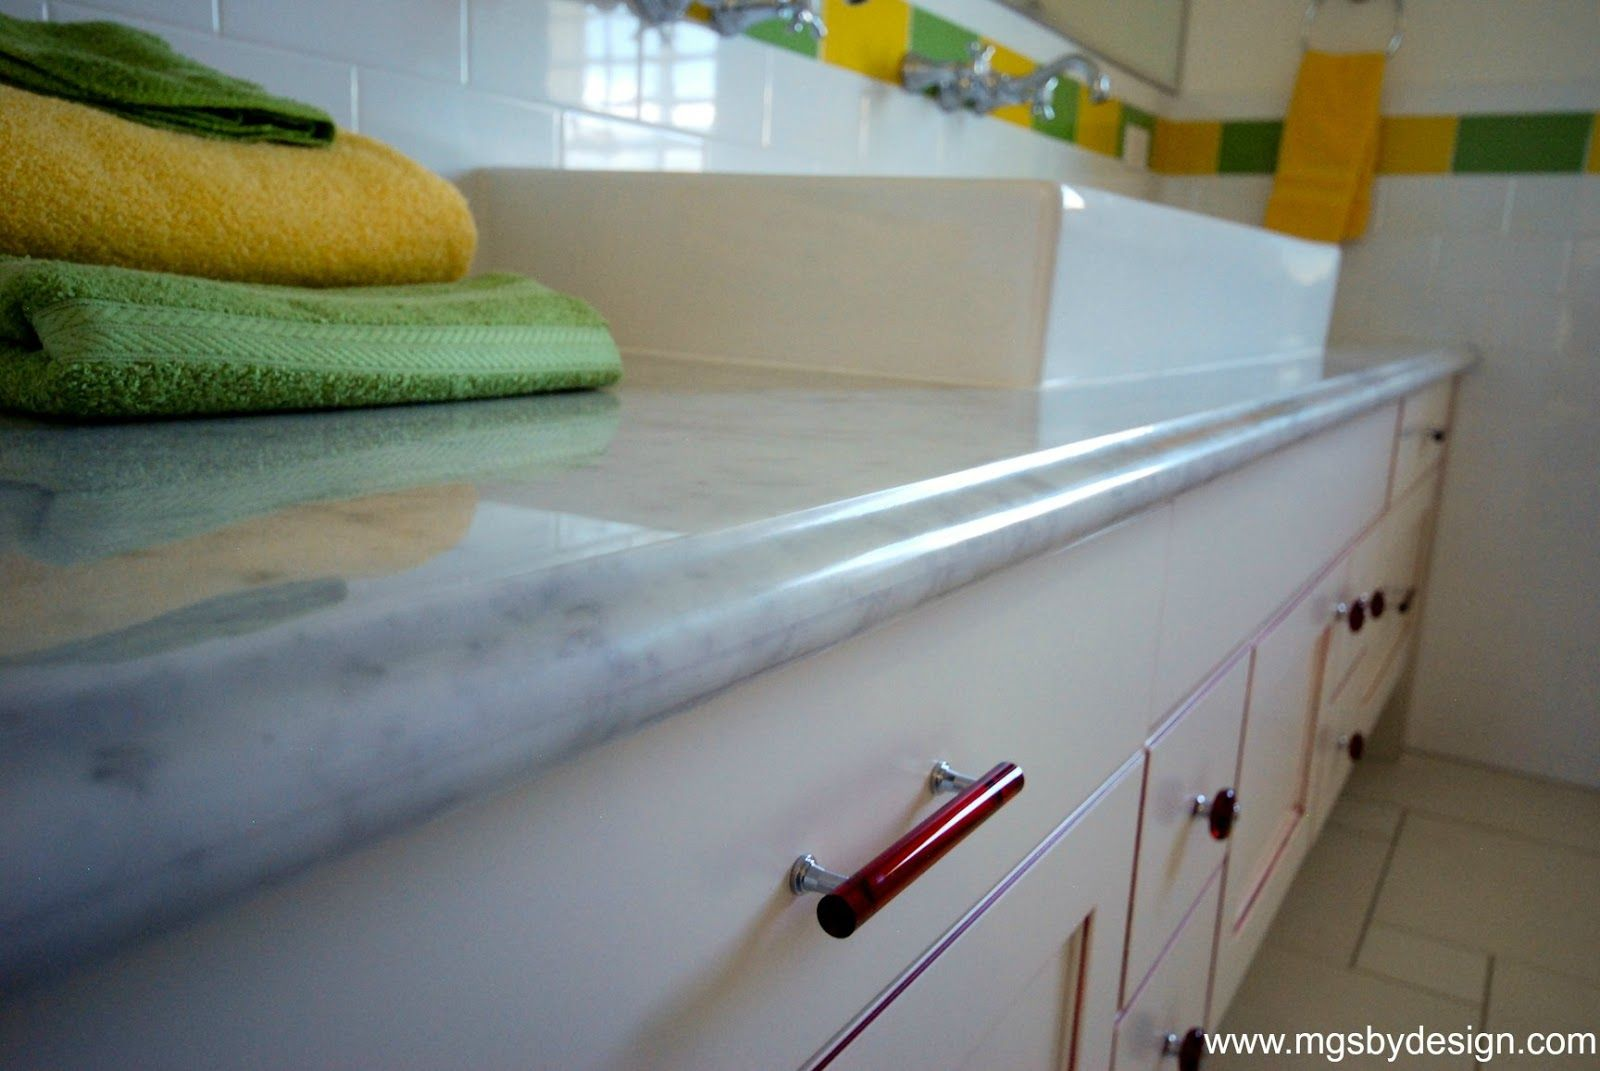 Darling Grandkids Bath With Carrara Marble From Mgs By Design Design Countertops Kitchen Remodel